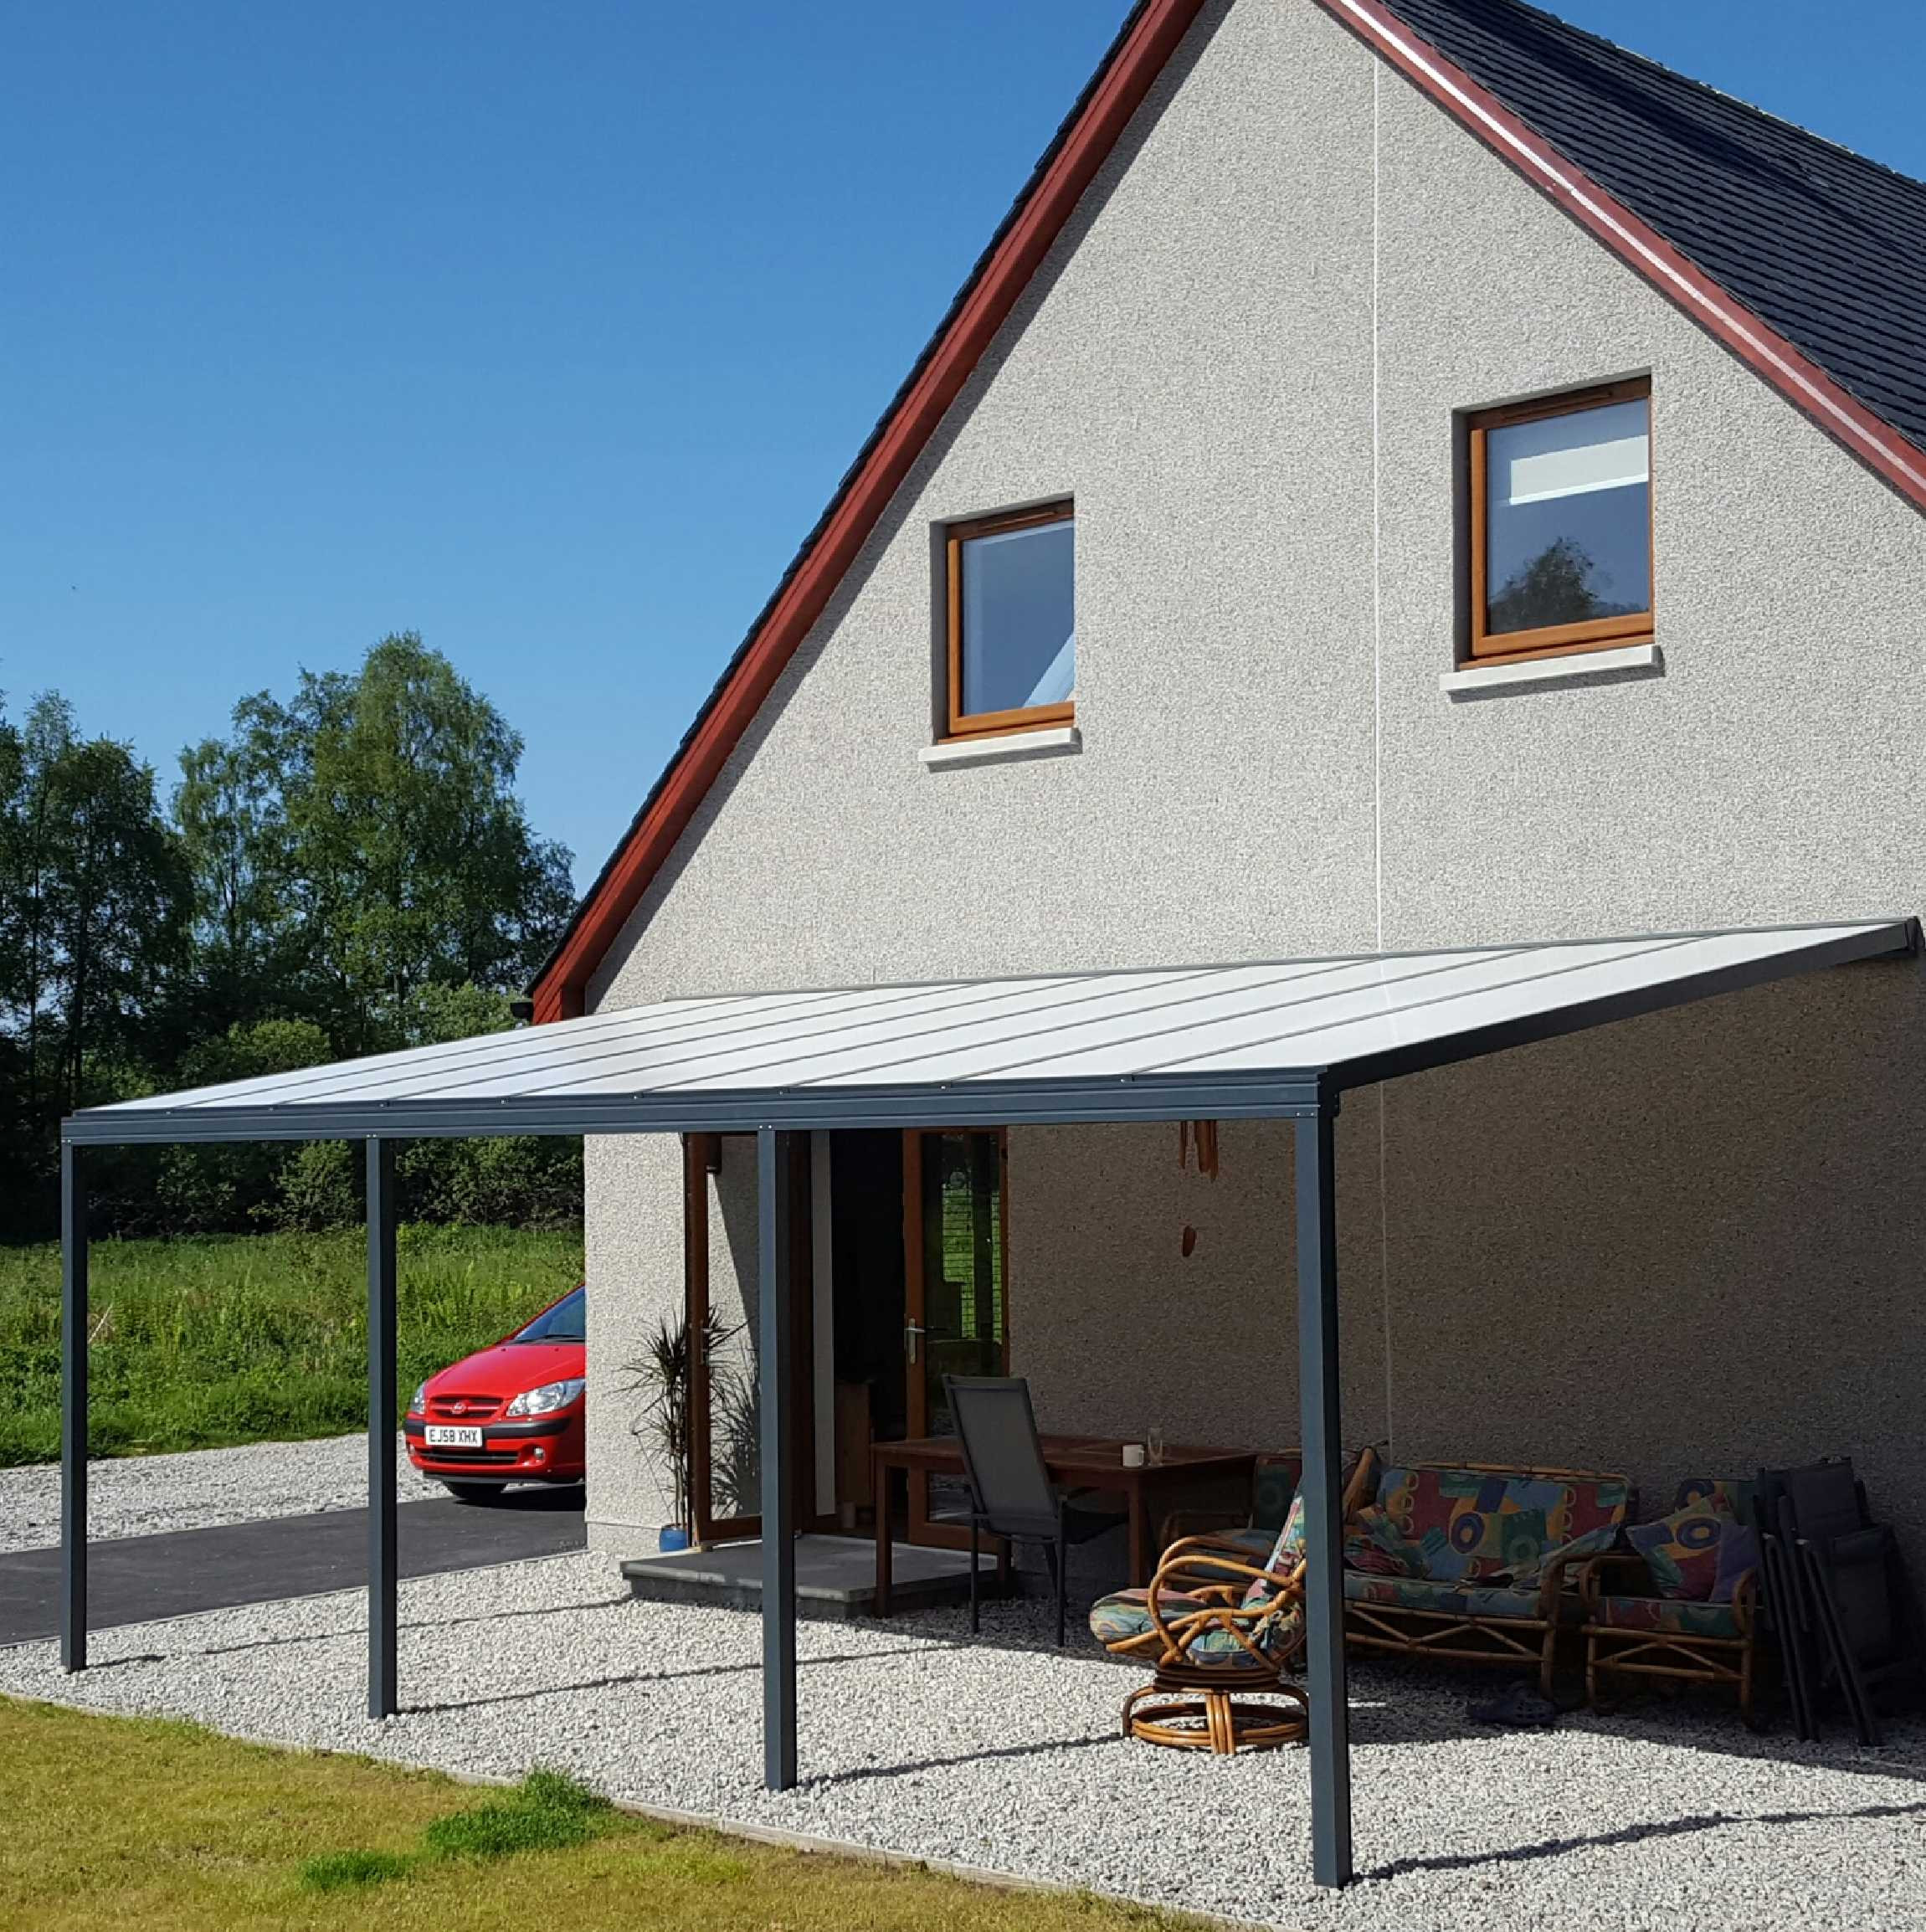 Great selection of Omega Smart Lean-To Canopy, Anthracite Grey, 16mm Polycarbonate Glazing - 11.6m (W) x 1.5m (P), (5) Supporting Posts